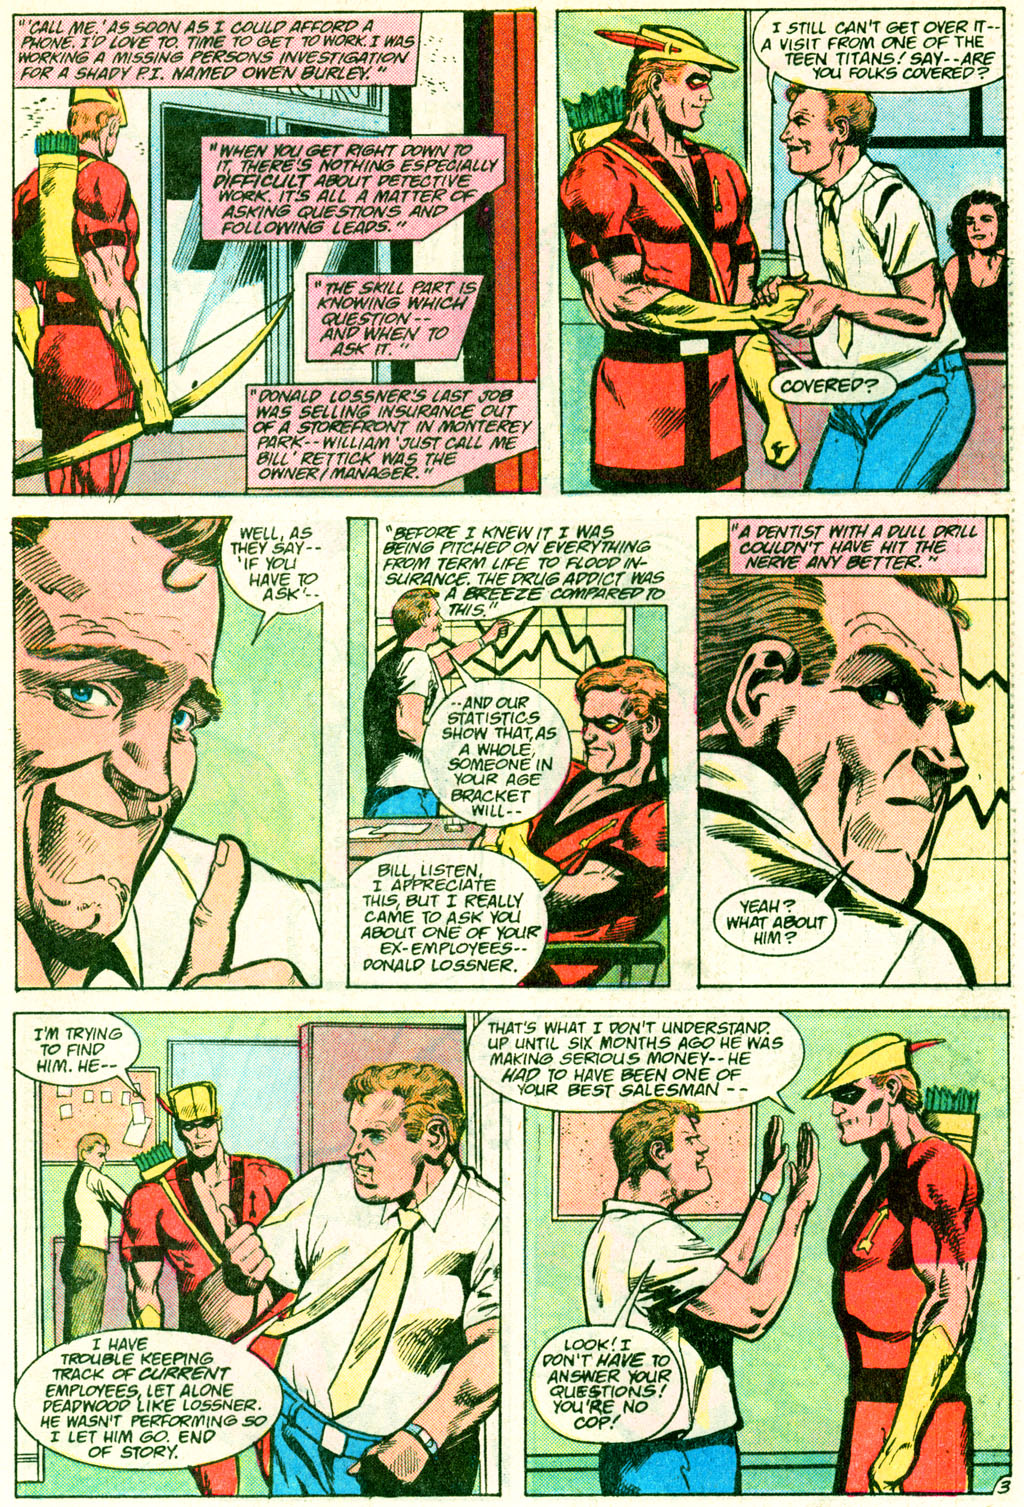 Read online Action Comics (1938) comic -  Issue #637 - 4